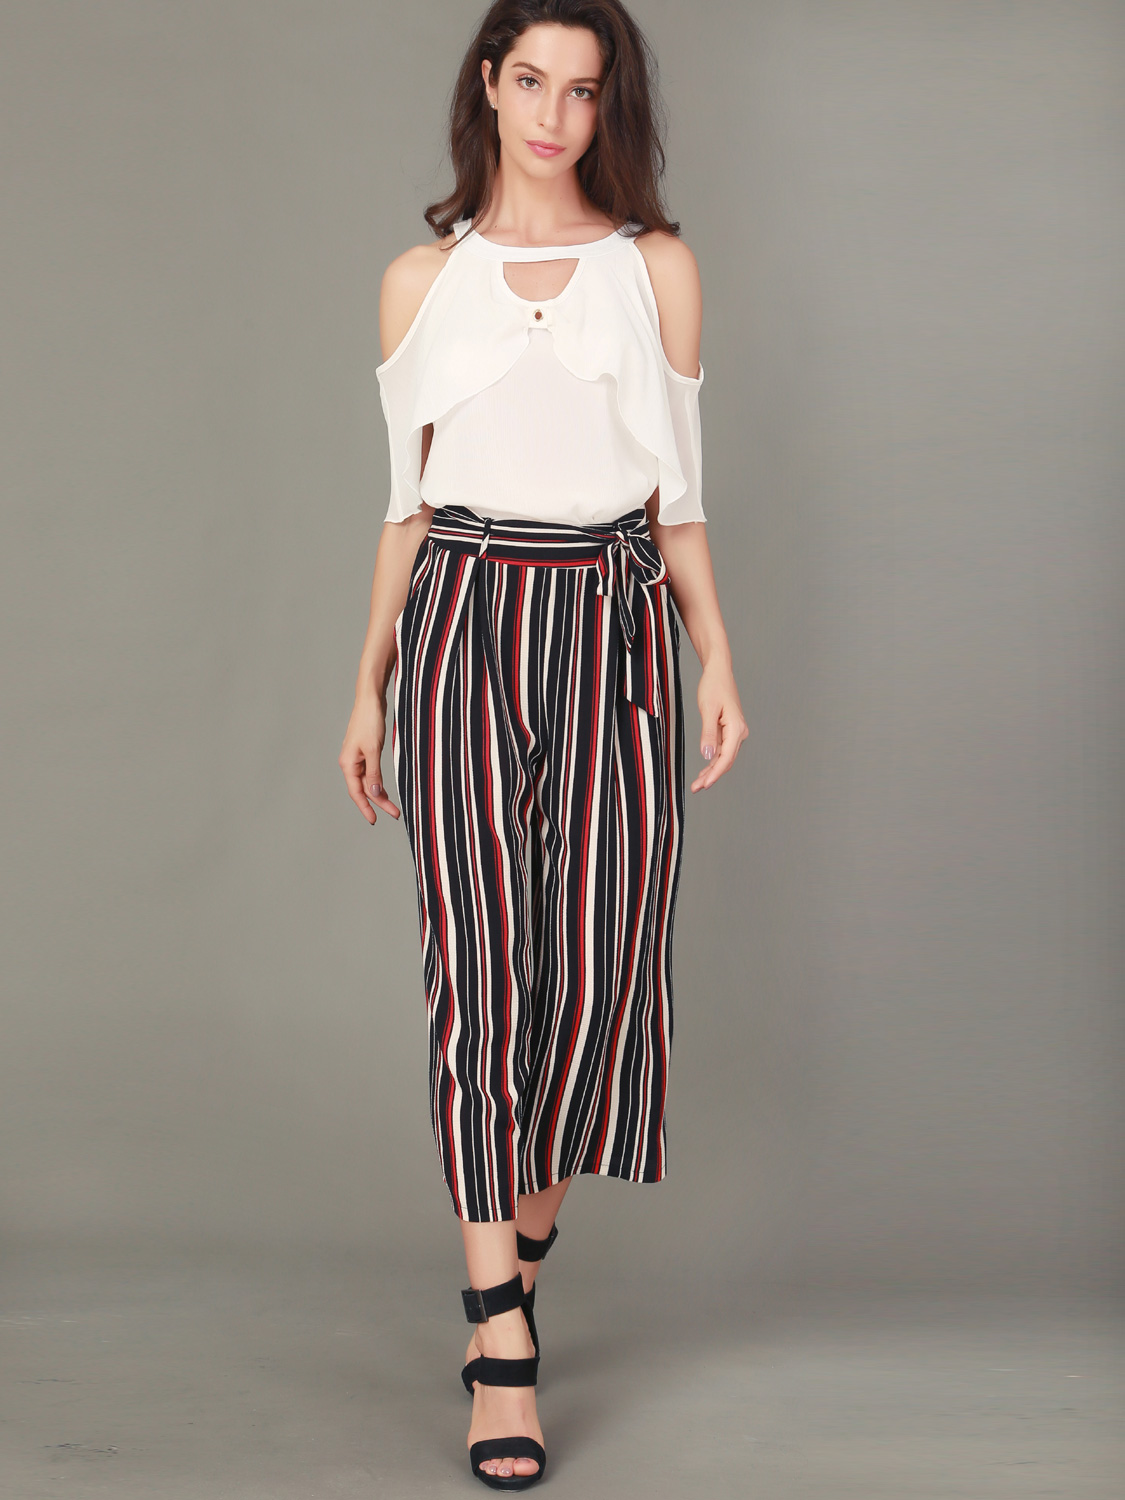 3582a10a89 OneBling Two Piece Outfits Open Shoulder Ruffles Blouses and Striped Pants. Loading  zoom